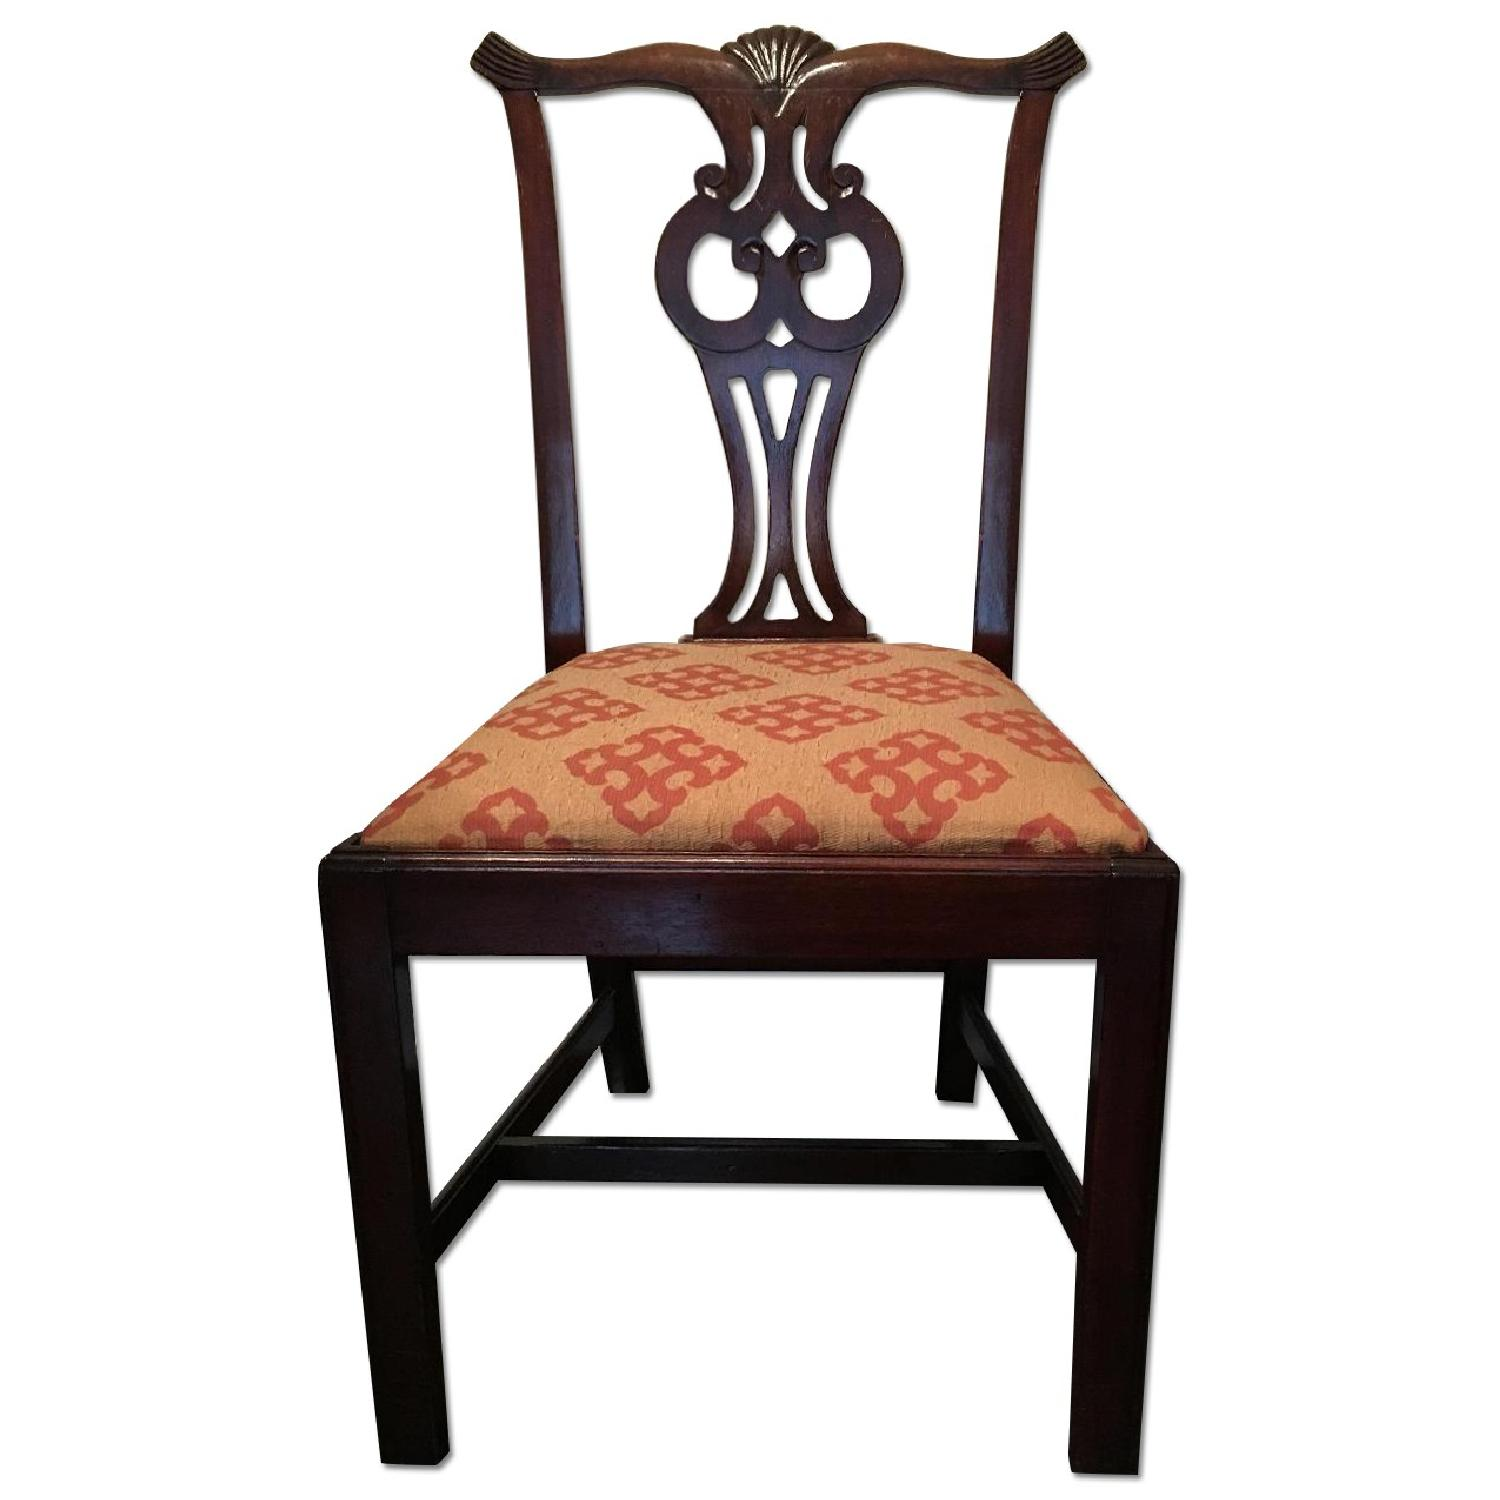 Vintage Chippendale Dining Chairs w/ Arms - image-0